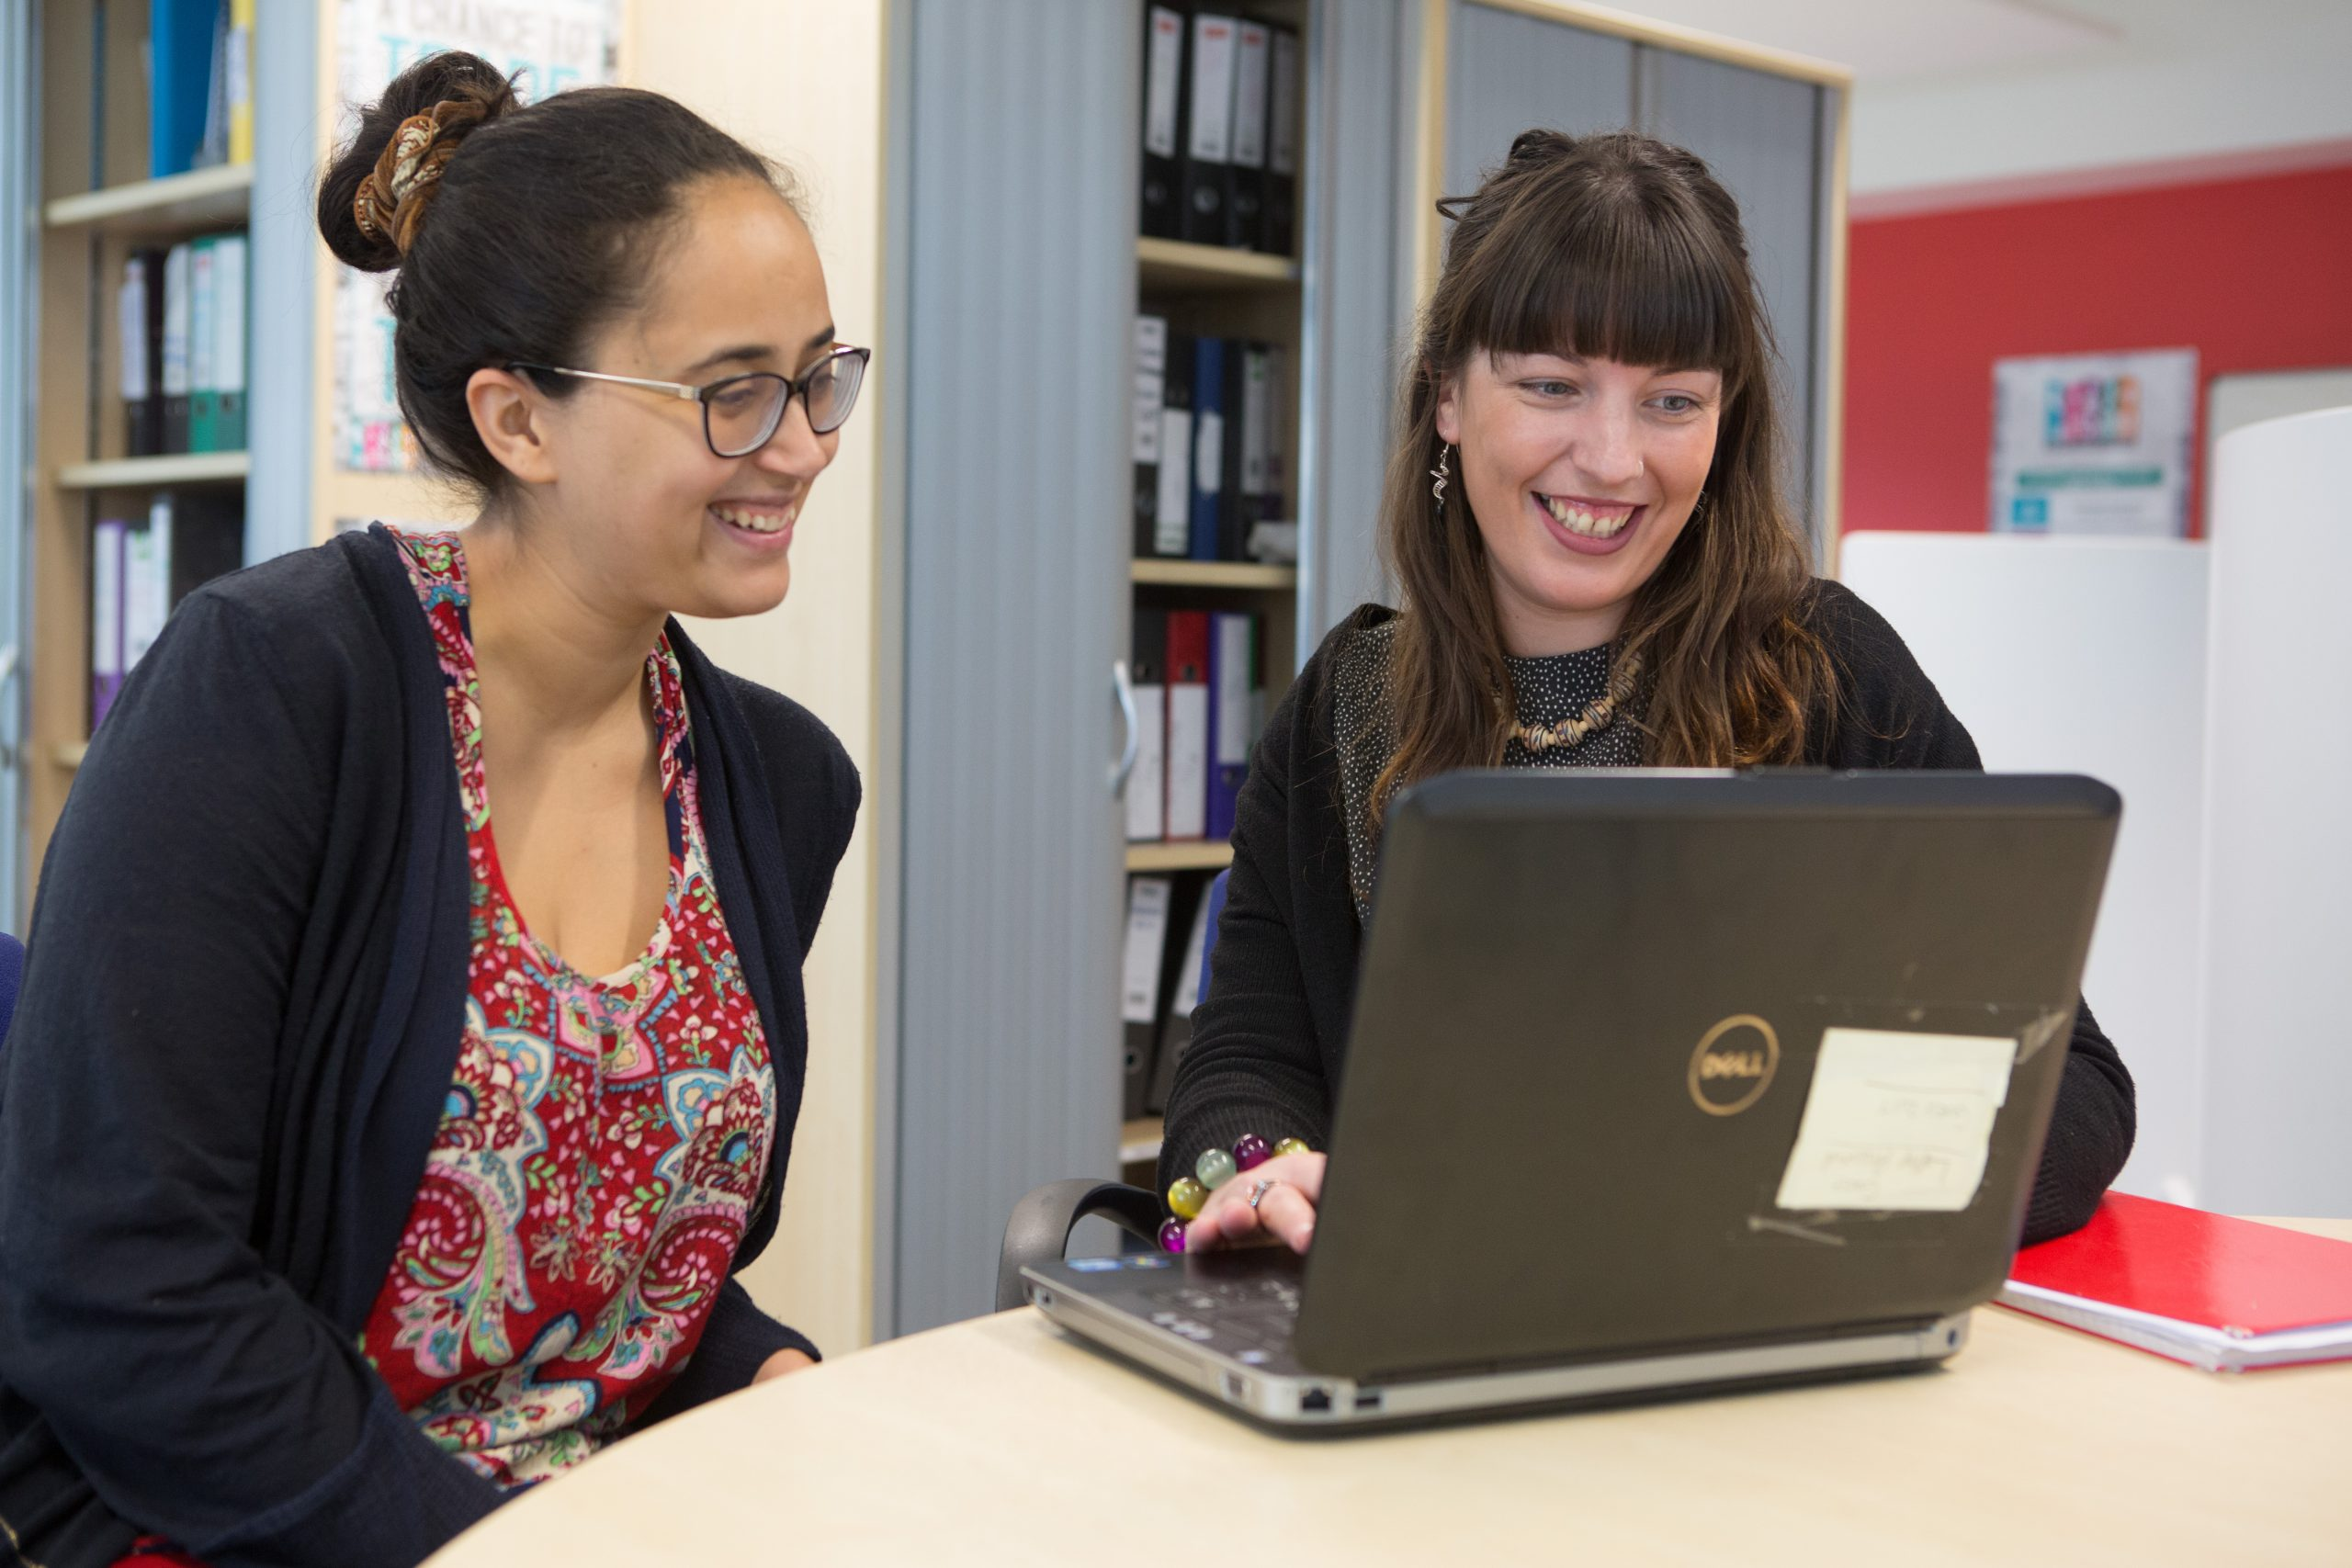 STEPS TOGETHER: AN EXCITING NEW PROJECT FOR UNEMPLOYED WOMEN IN NEWCASTLE